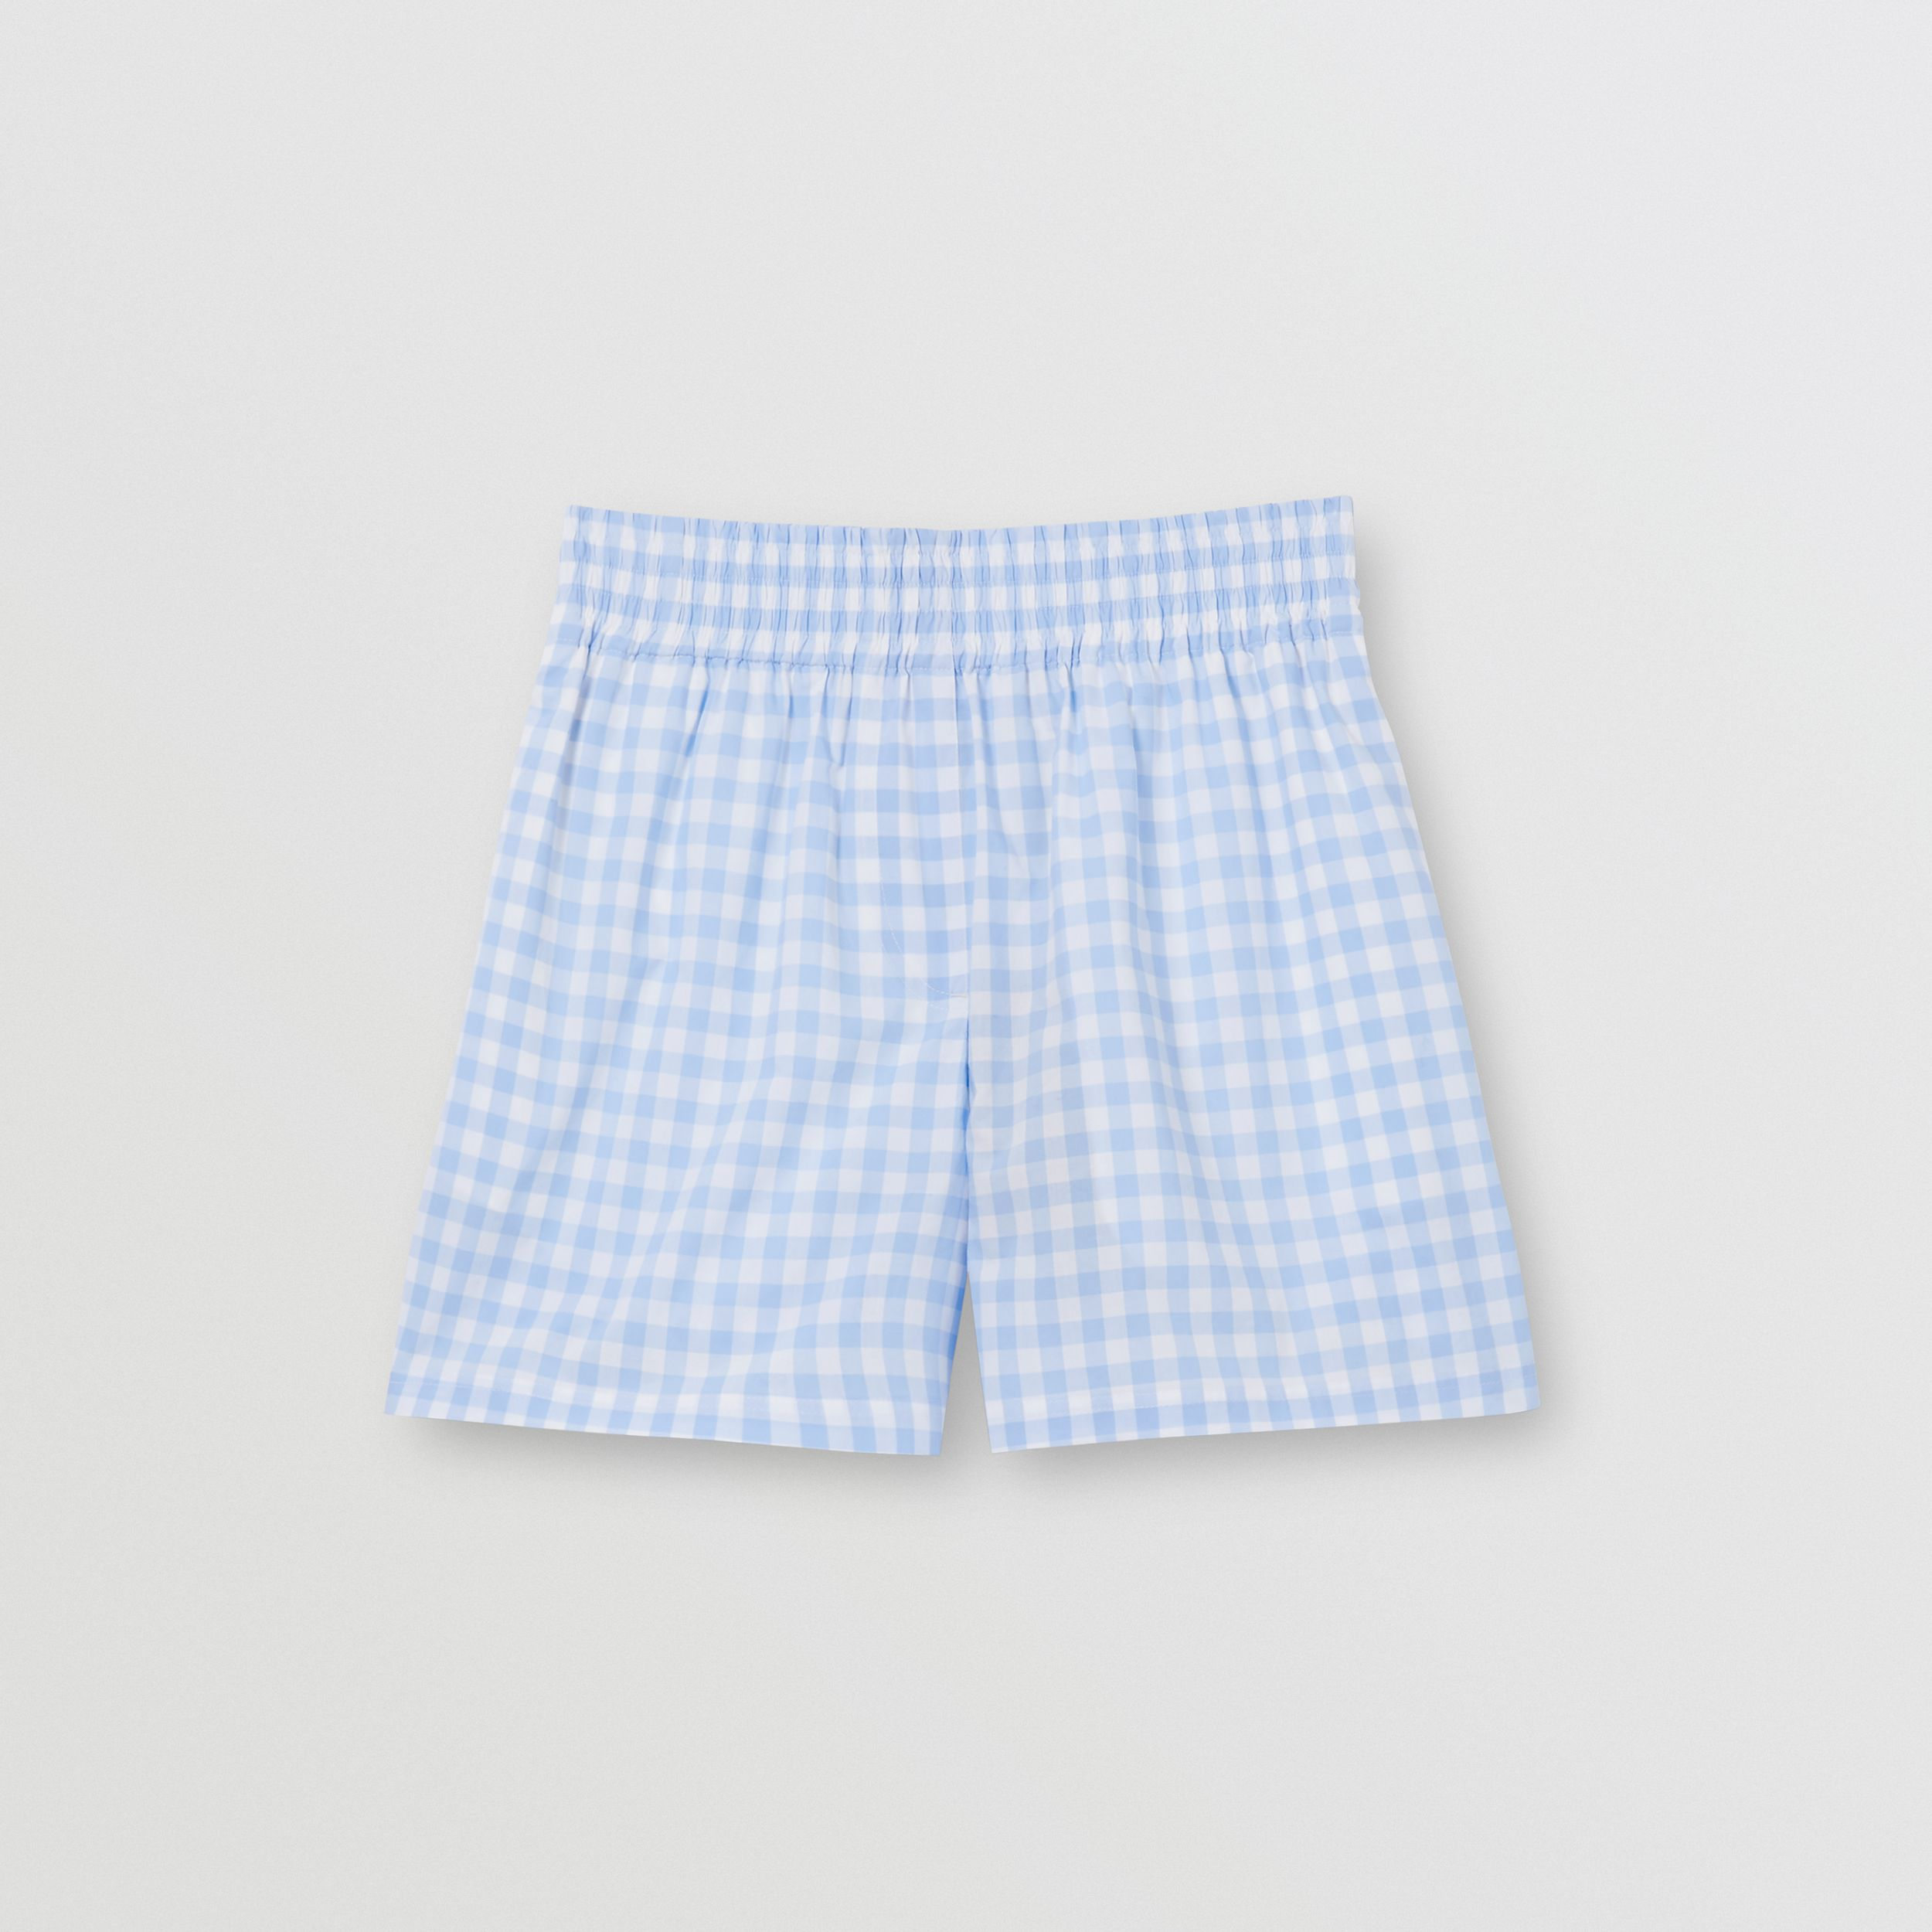 Gingham Cotton Shorts in Pale Blue - Women | Burberry - 4